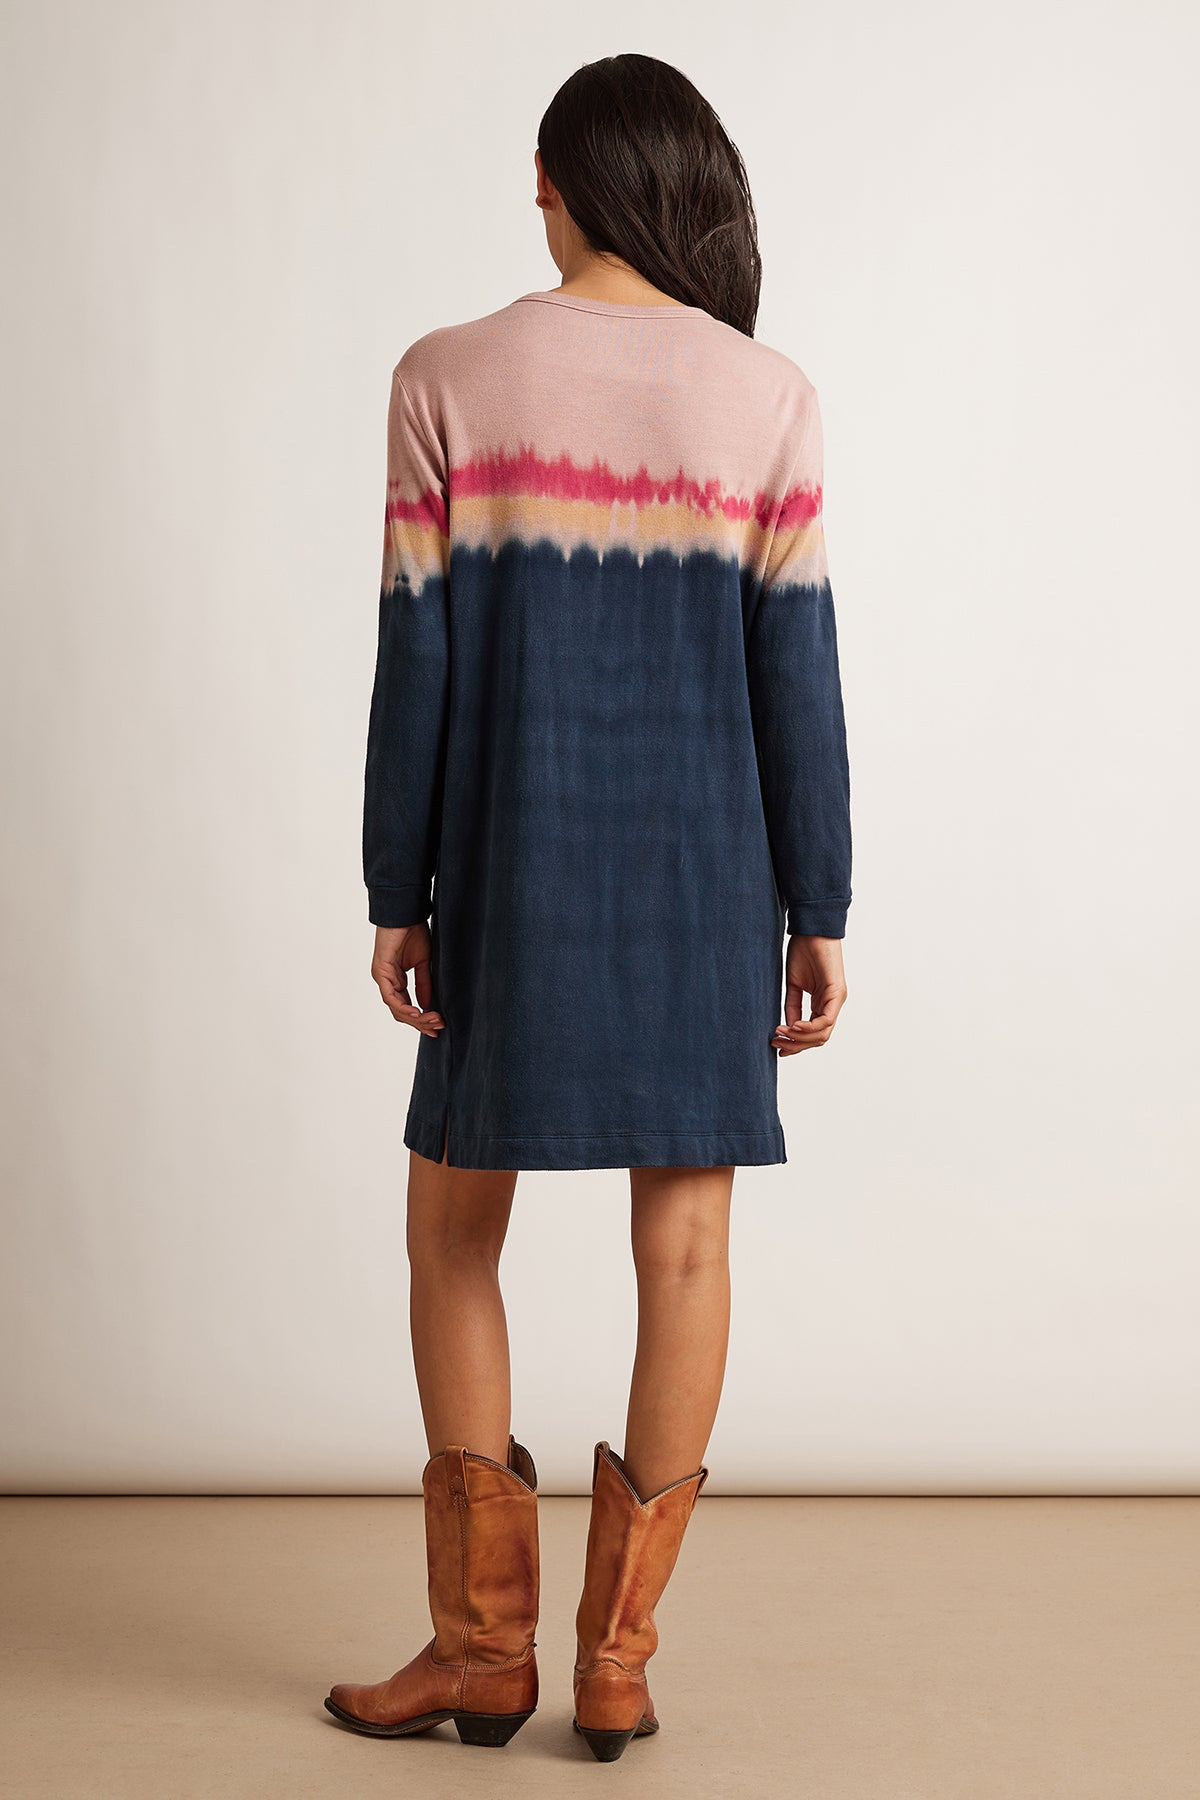 PRICILLA LUXE FLEECE TIE DYE SWEATSHIRT DRESS